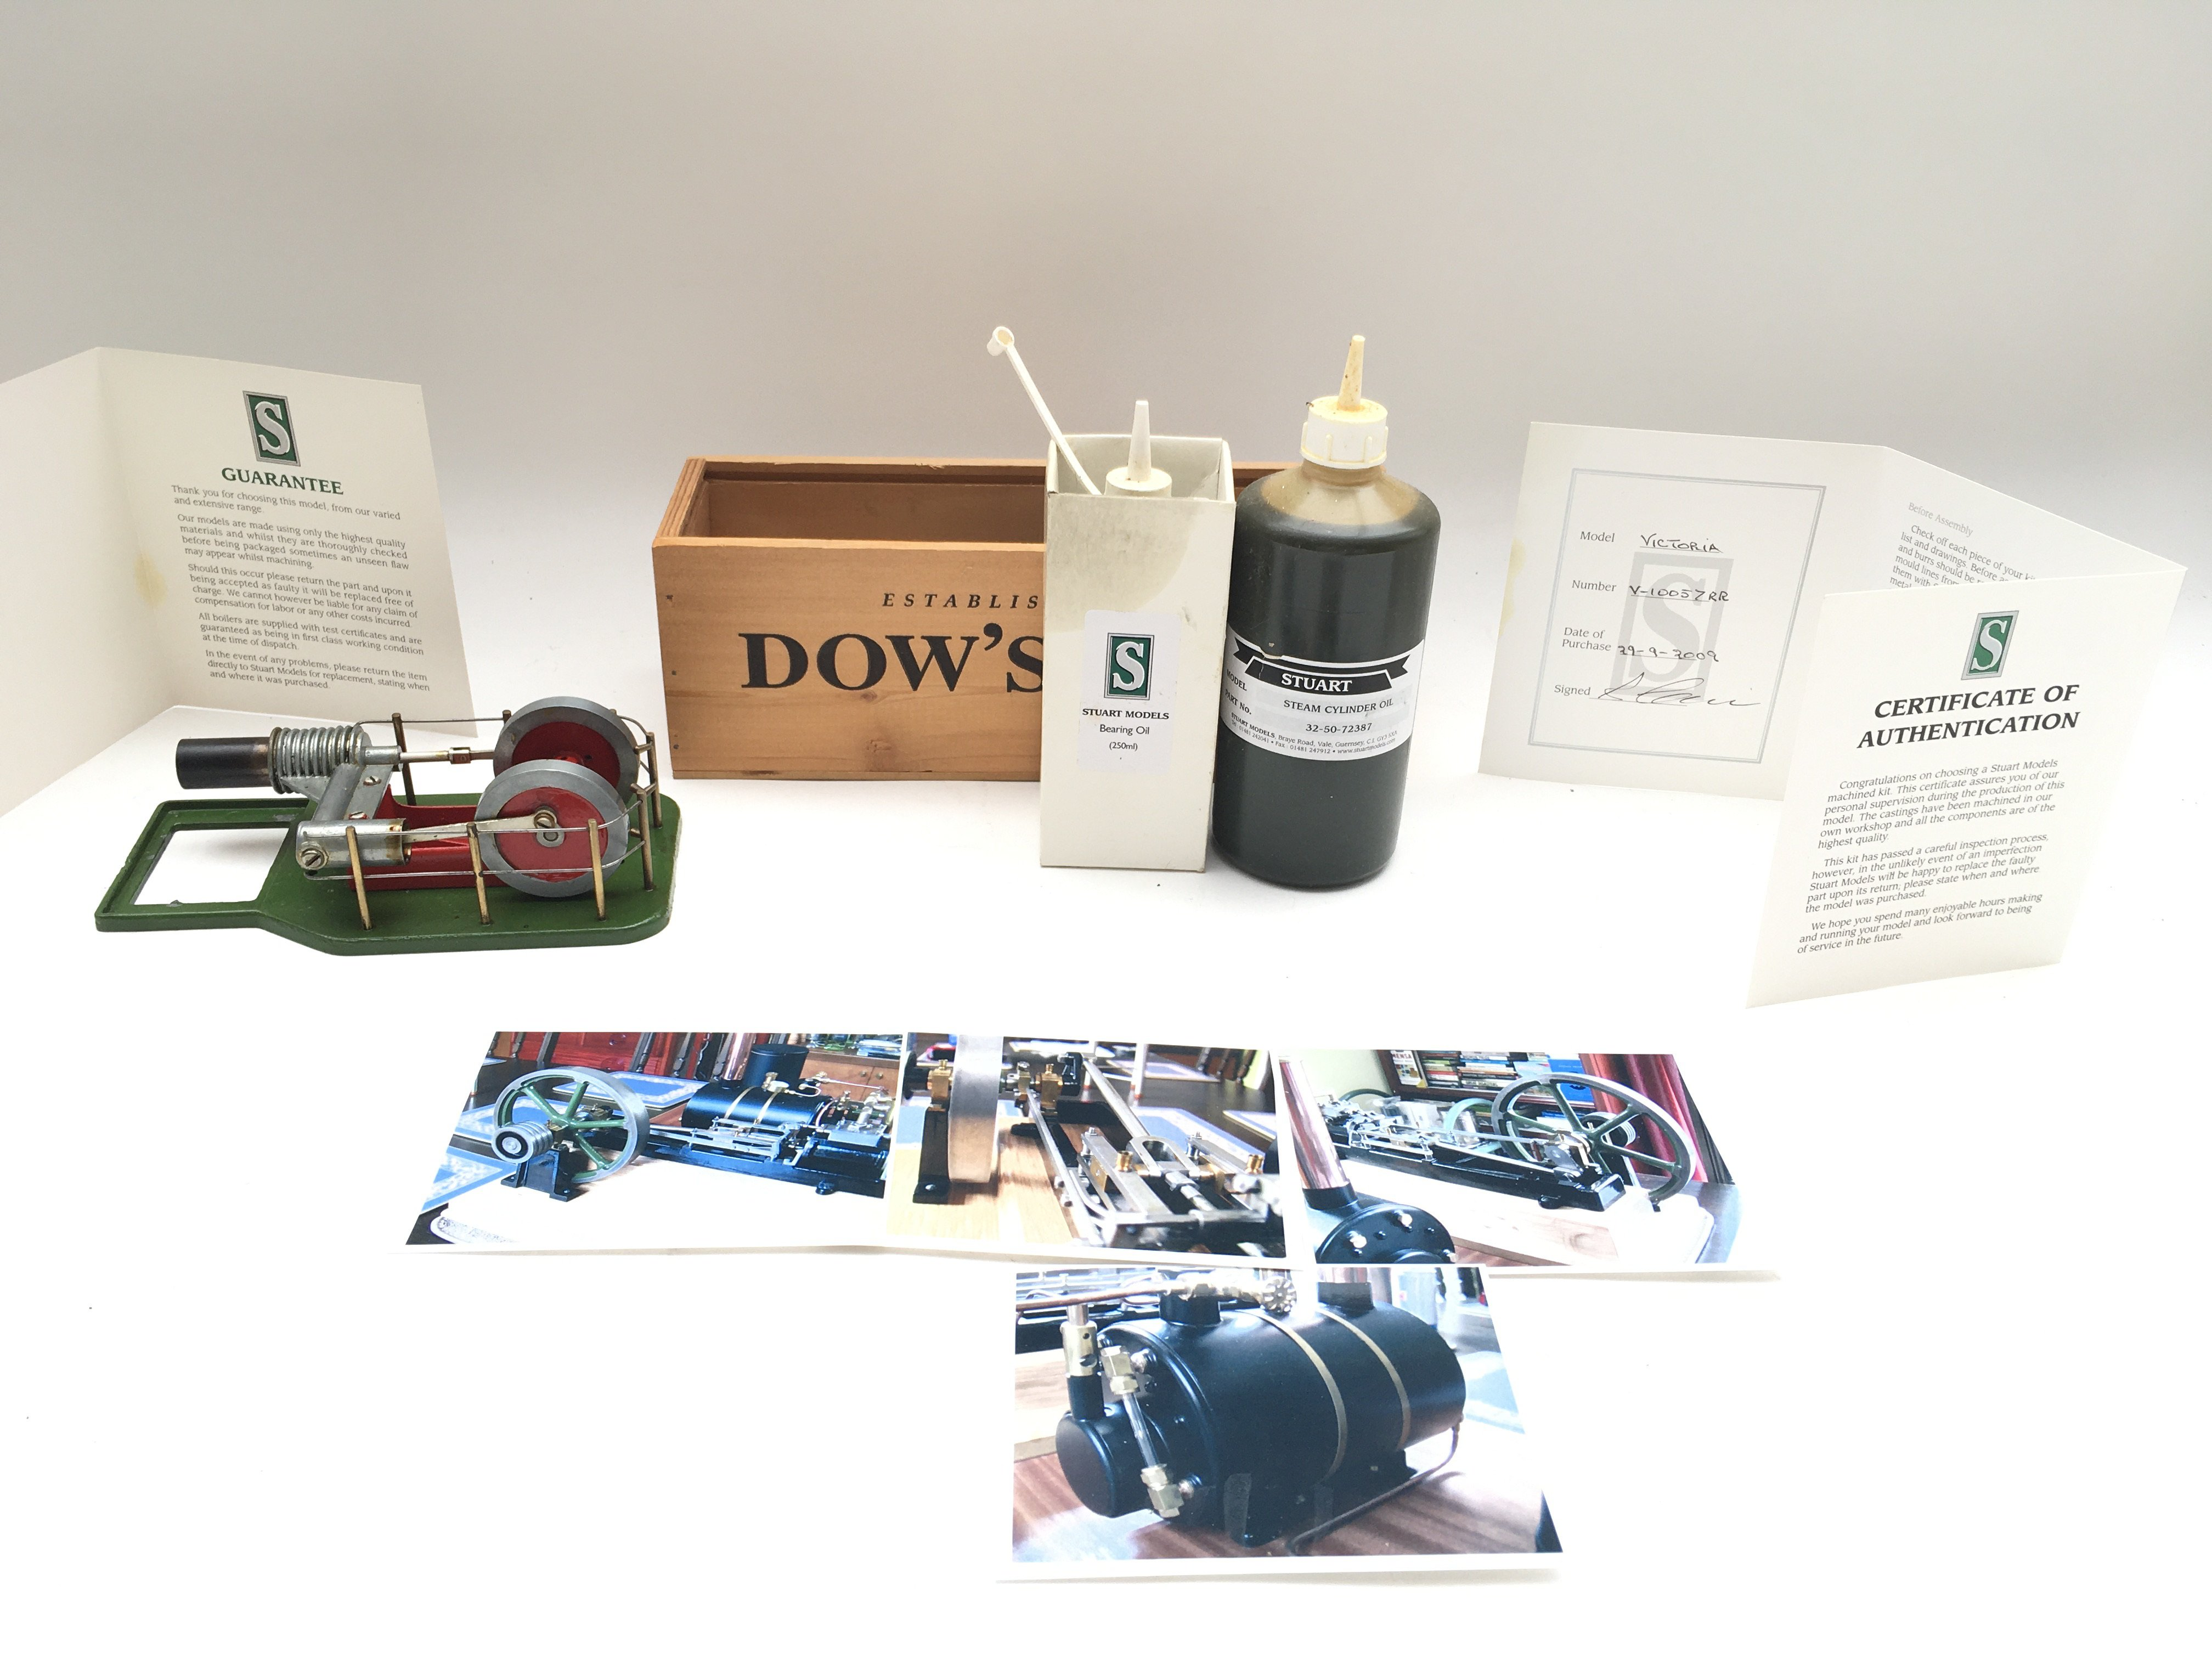 A Stuart Models Steam Engine including Feed Pump & Reservoir. Includes oils and certificate of - Image 3 of 5